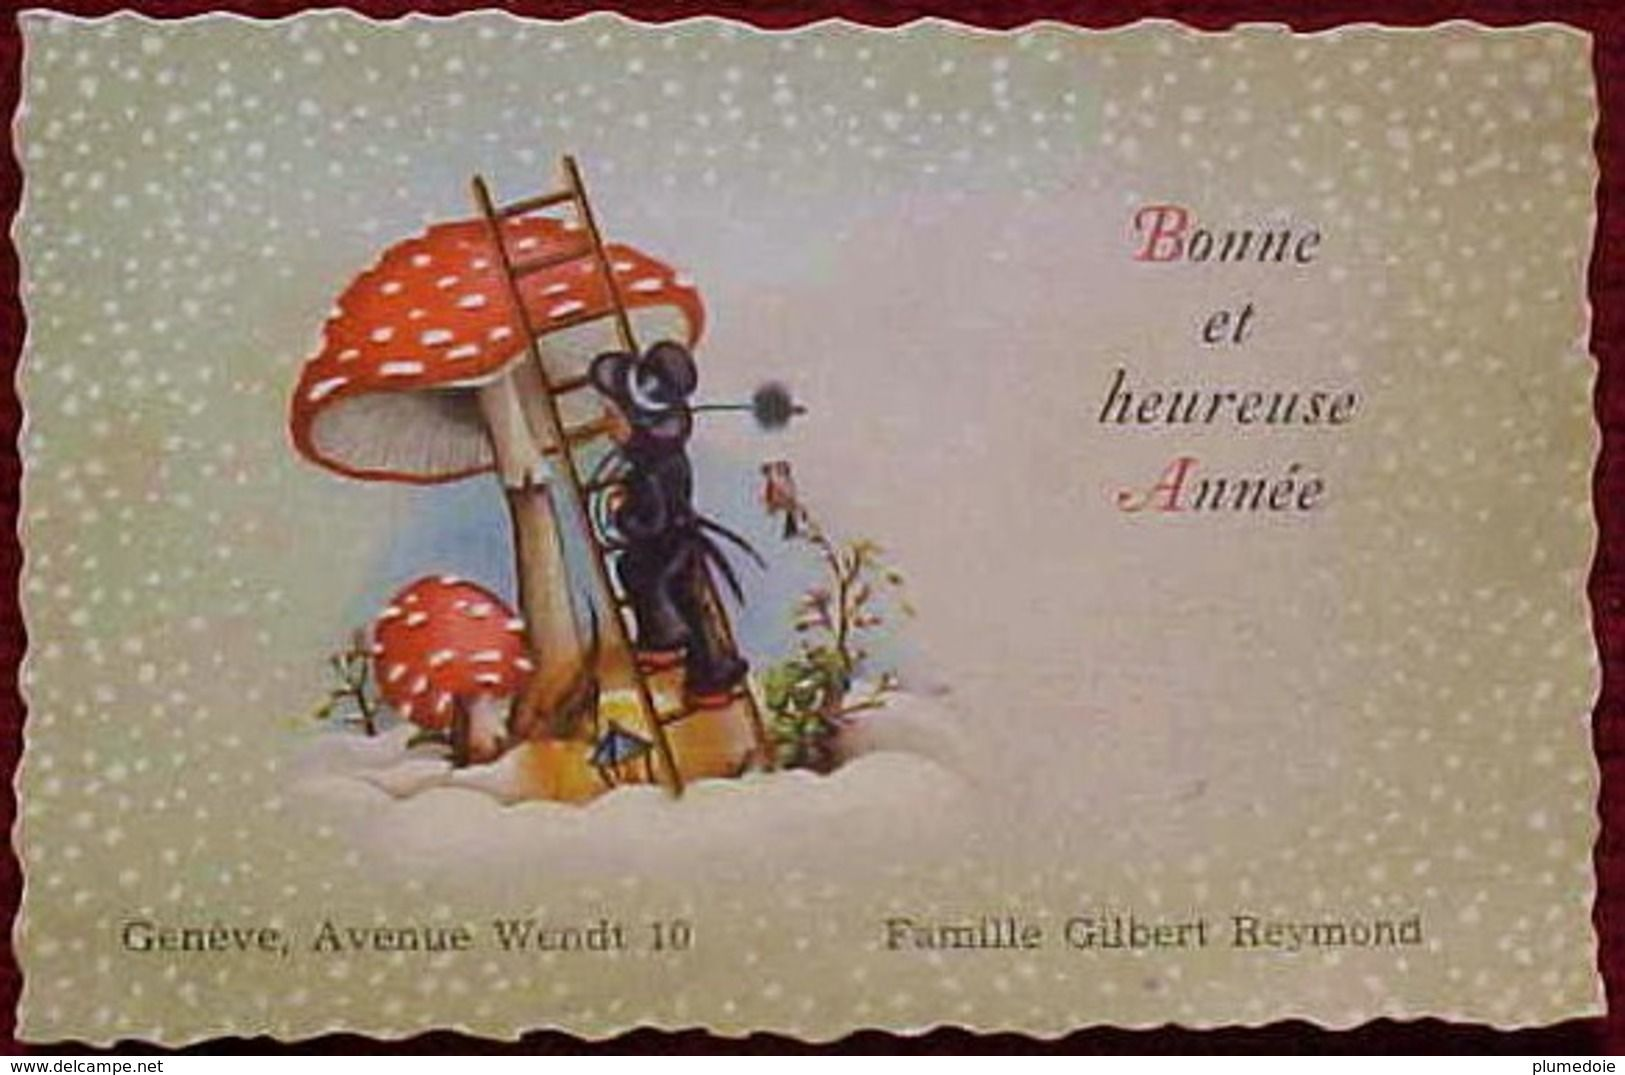 Pin by ivan i on paths pinterest paths old greeting cards feta paths chimney sweep mushroom switzerland postcards snow pathways kristyandbryce Images